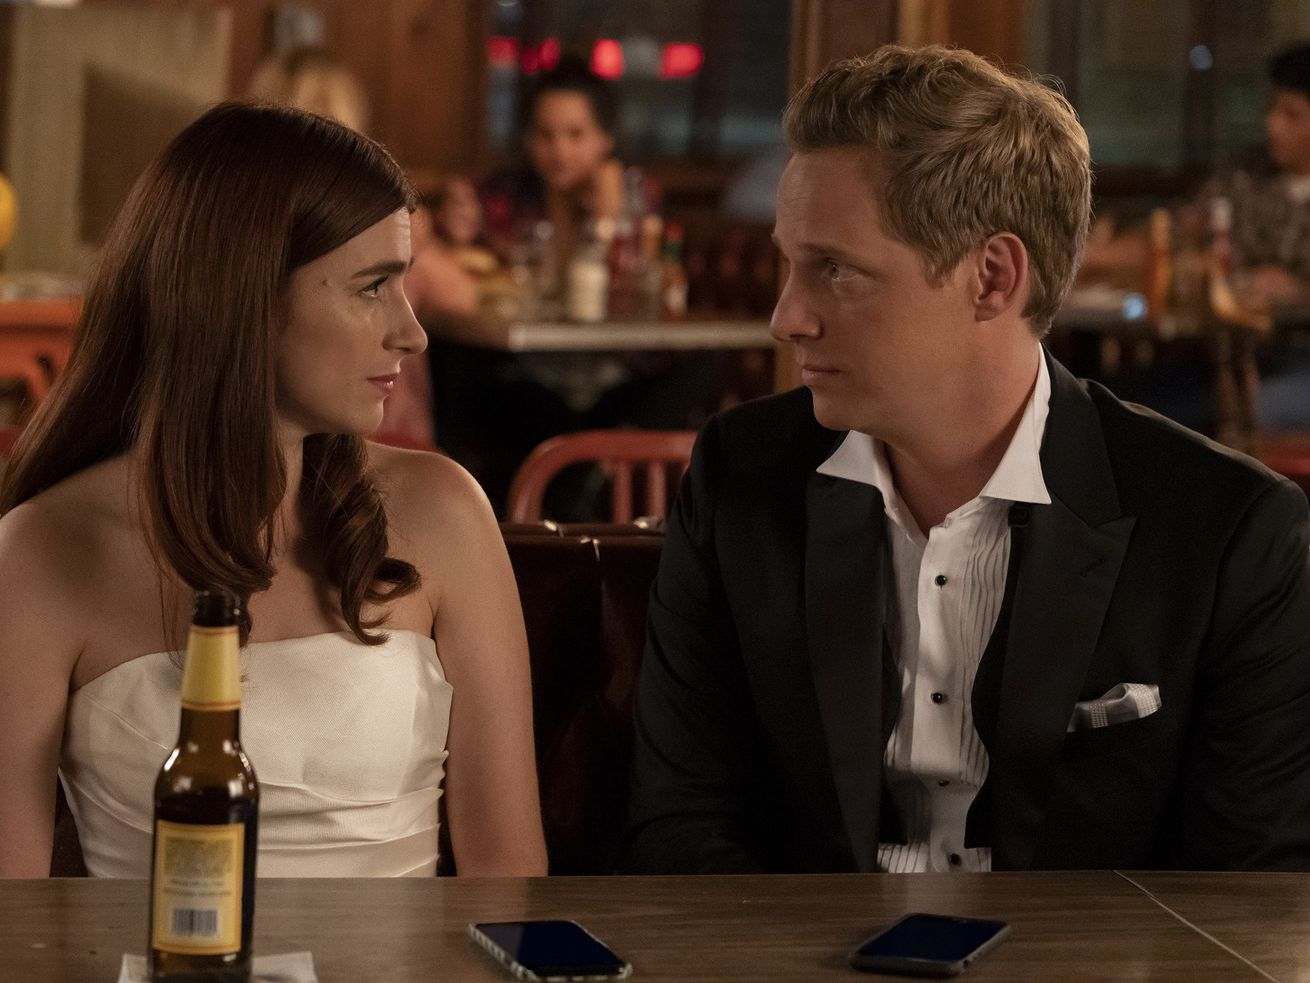 Jimmy and Gretchen promise to love each other in their own way in the You're the Worst finale.